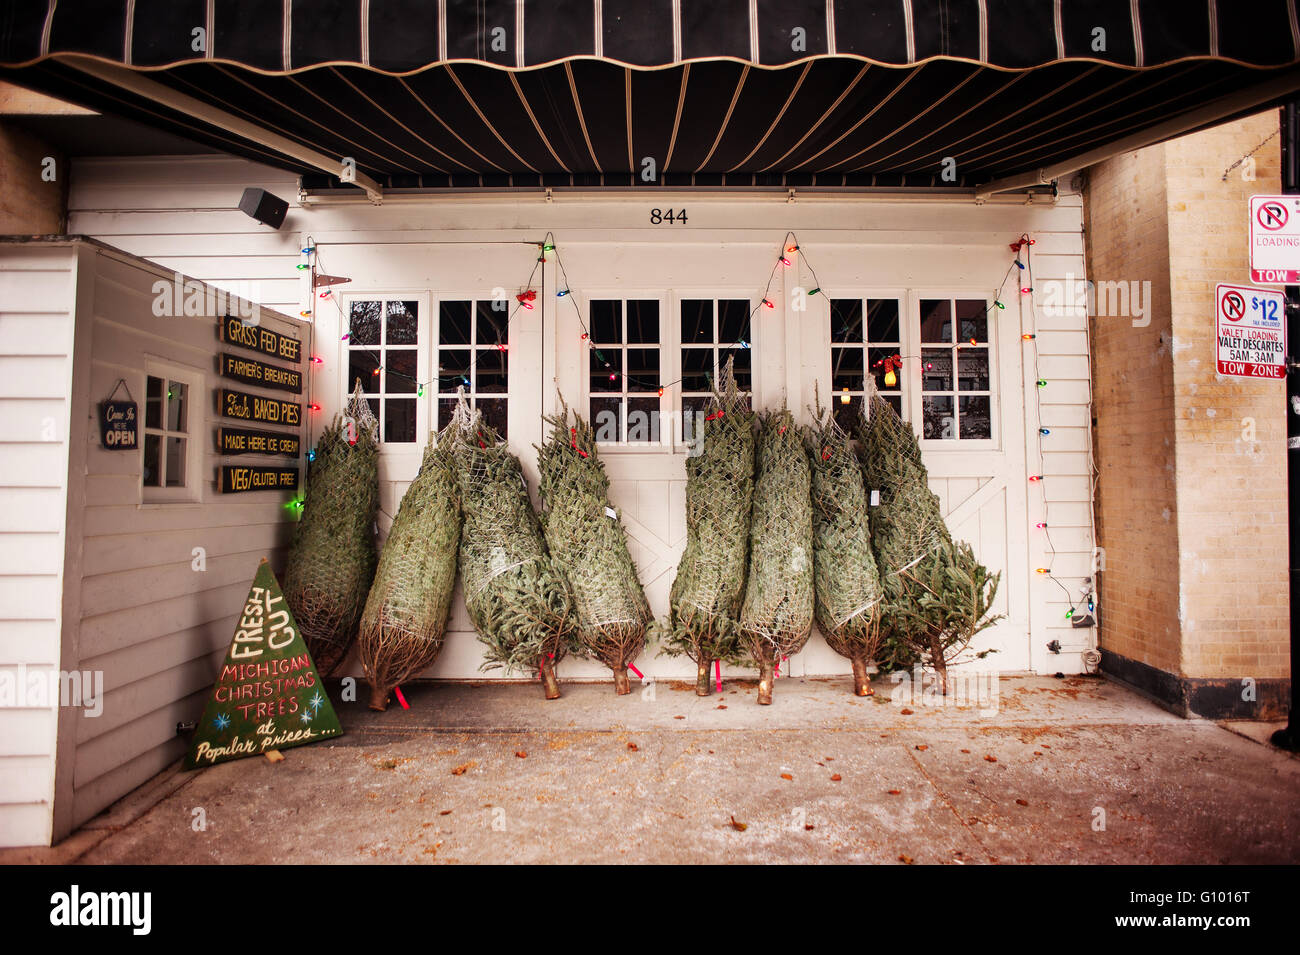 Fresh Cut Christmas Trees for Sale on street with vintage signage ...